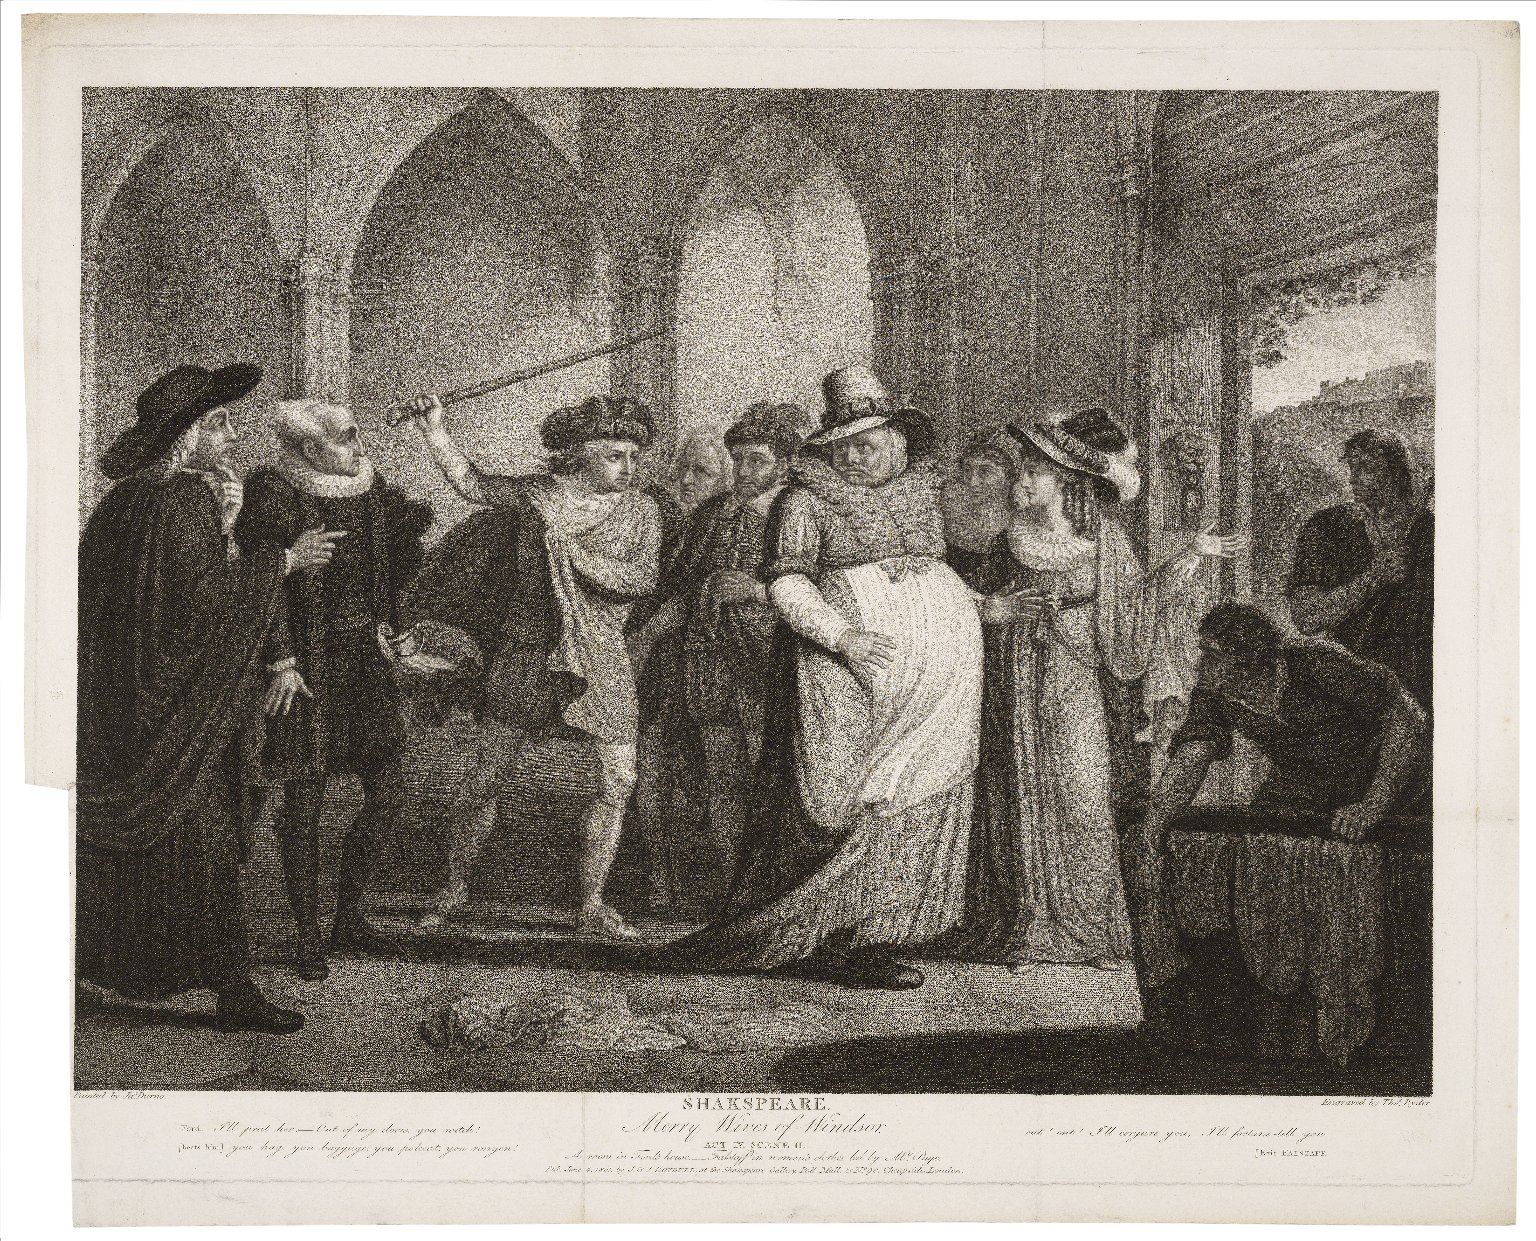 ...Merry wives of Windsor, act IV, scene 2, A room in Ford's House ; Falstaff in women's clothes led by Mrs. Page [graphic] / painted by Jas. Durno ; engraved by Thos. Ryder.